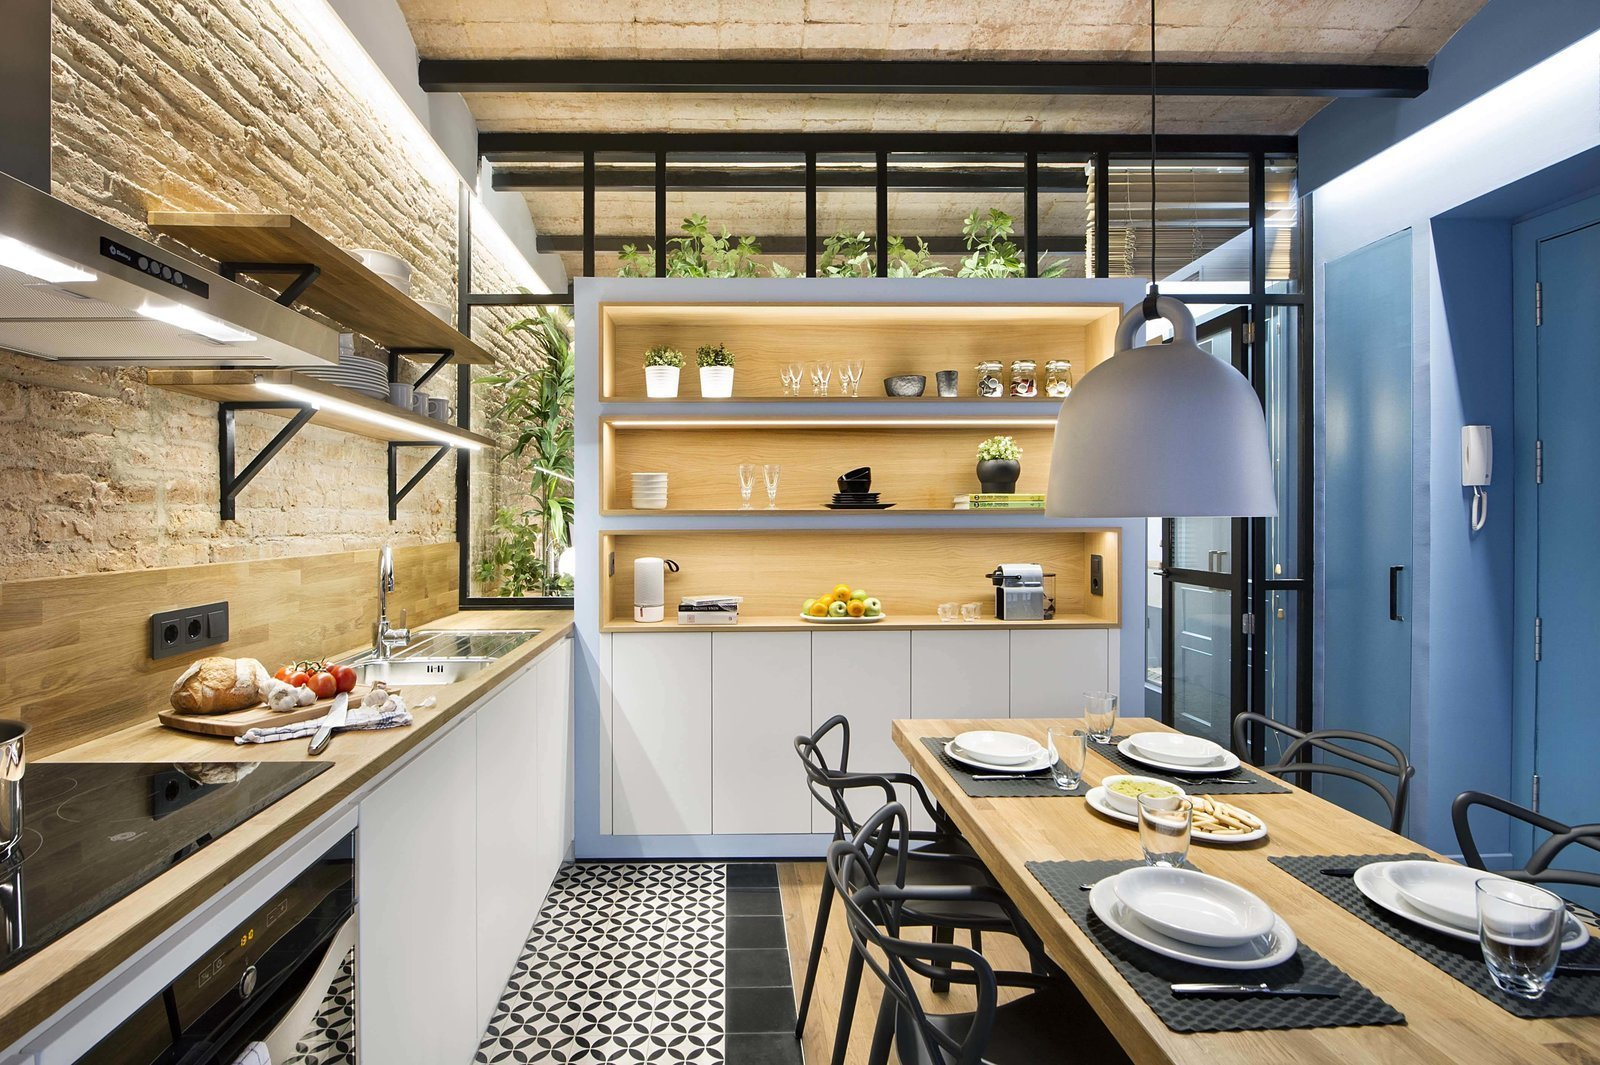 Tagged: Kitchen, Wood Counter, Wood Backsplashe, Pendant Lighting, Dishwasher, Range, Ceiling Lighting, Drop In Sink, Range Hood, and Ceramic Tile Floor.  Photo 1 of 11 in A Smart Layout Maximizes Space in This Compact Urban Beach Apartment in Barcelona